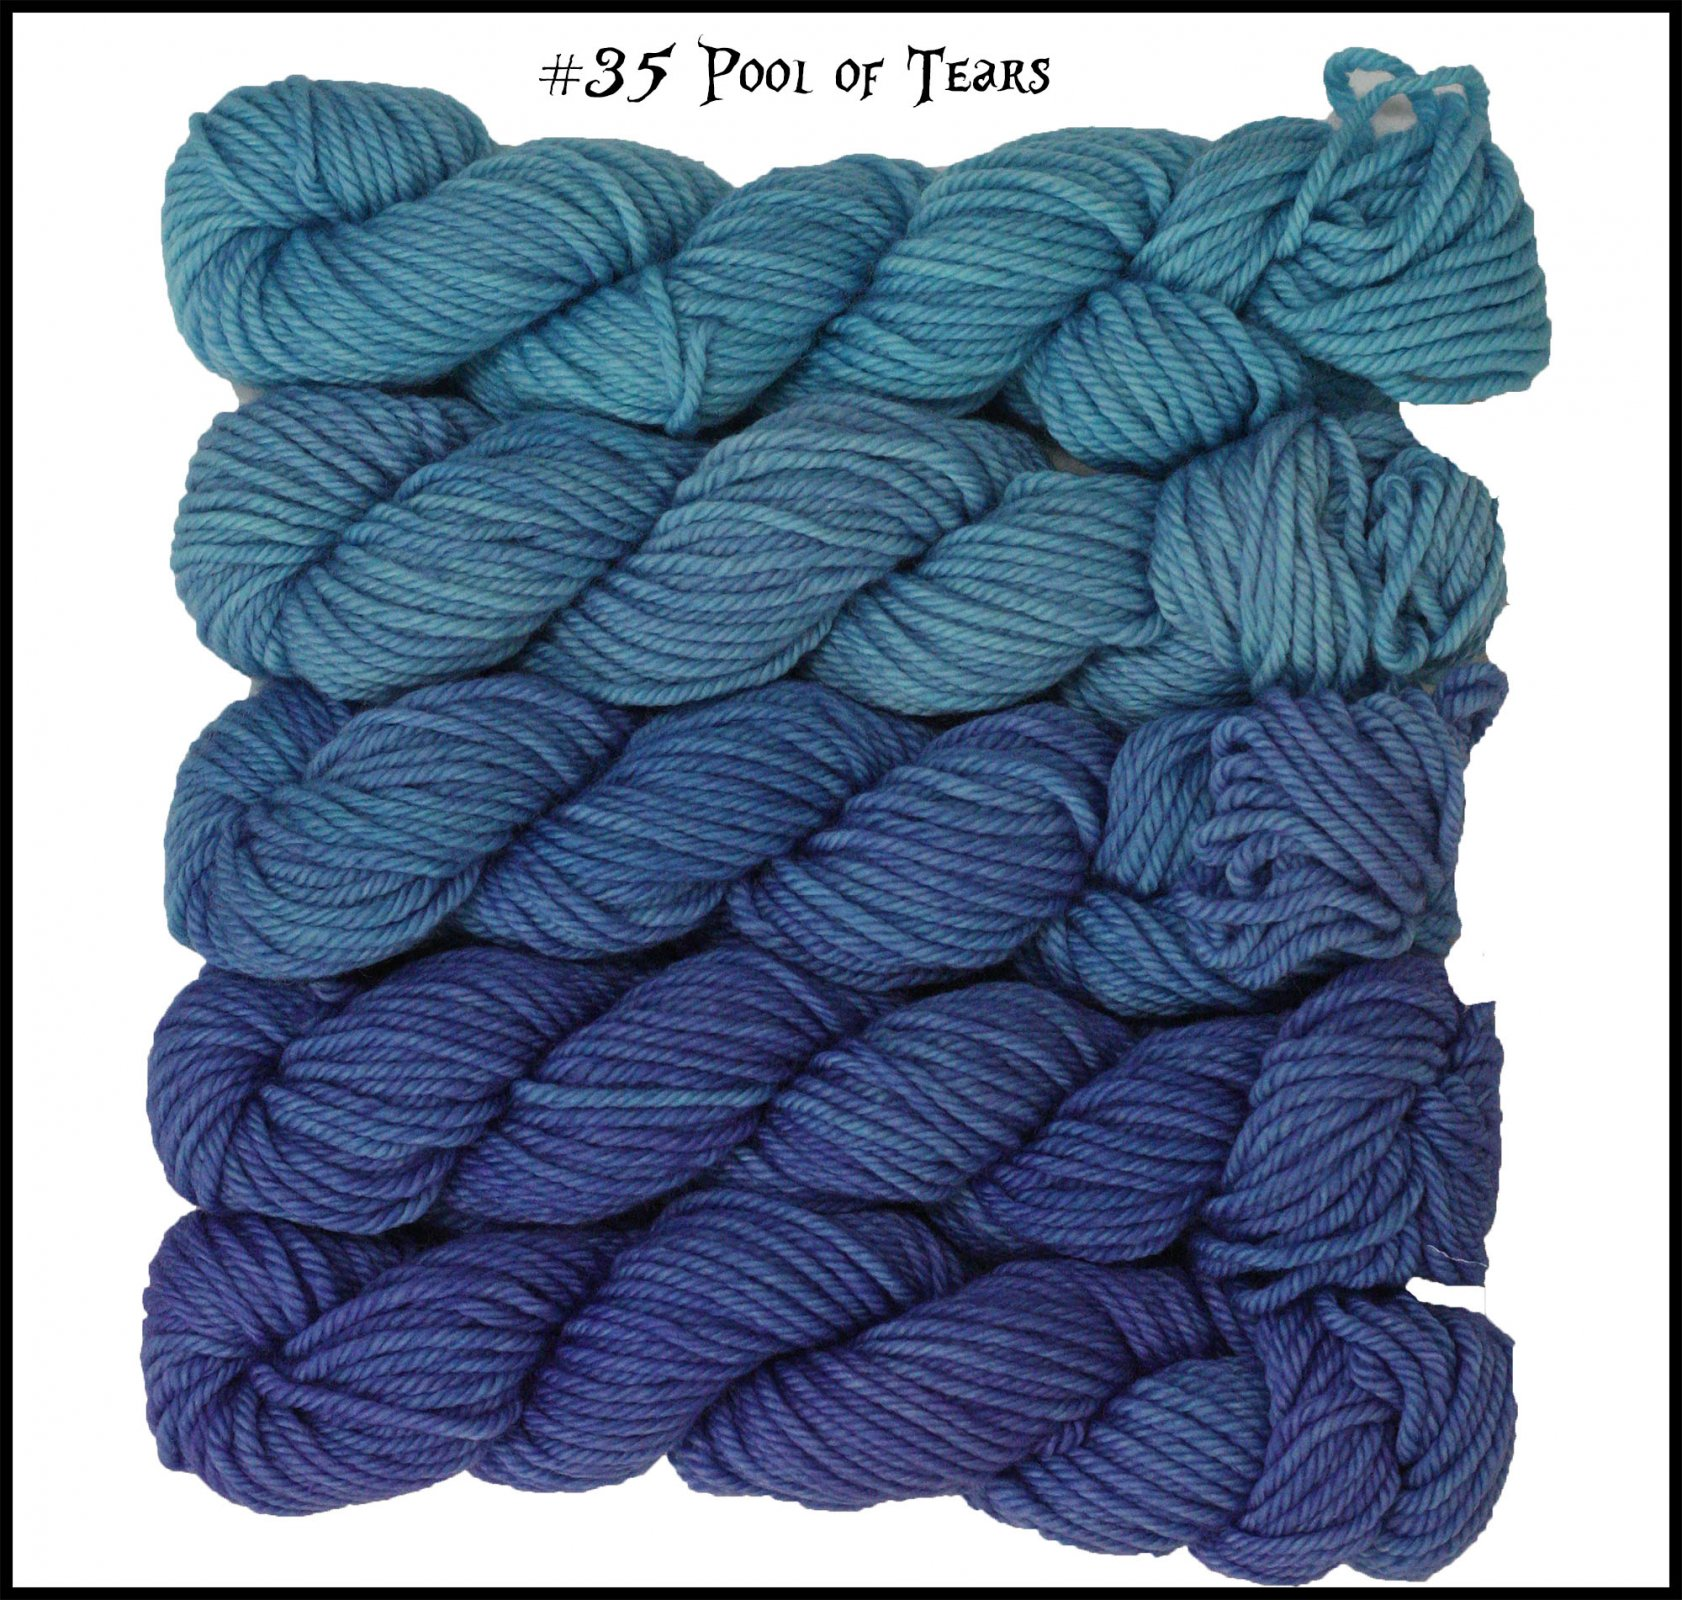 Mini Skein Pack - Cheshire Cat: Color Morph - #35 Pool of Tears